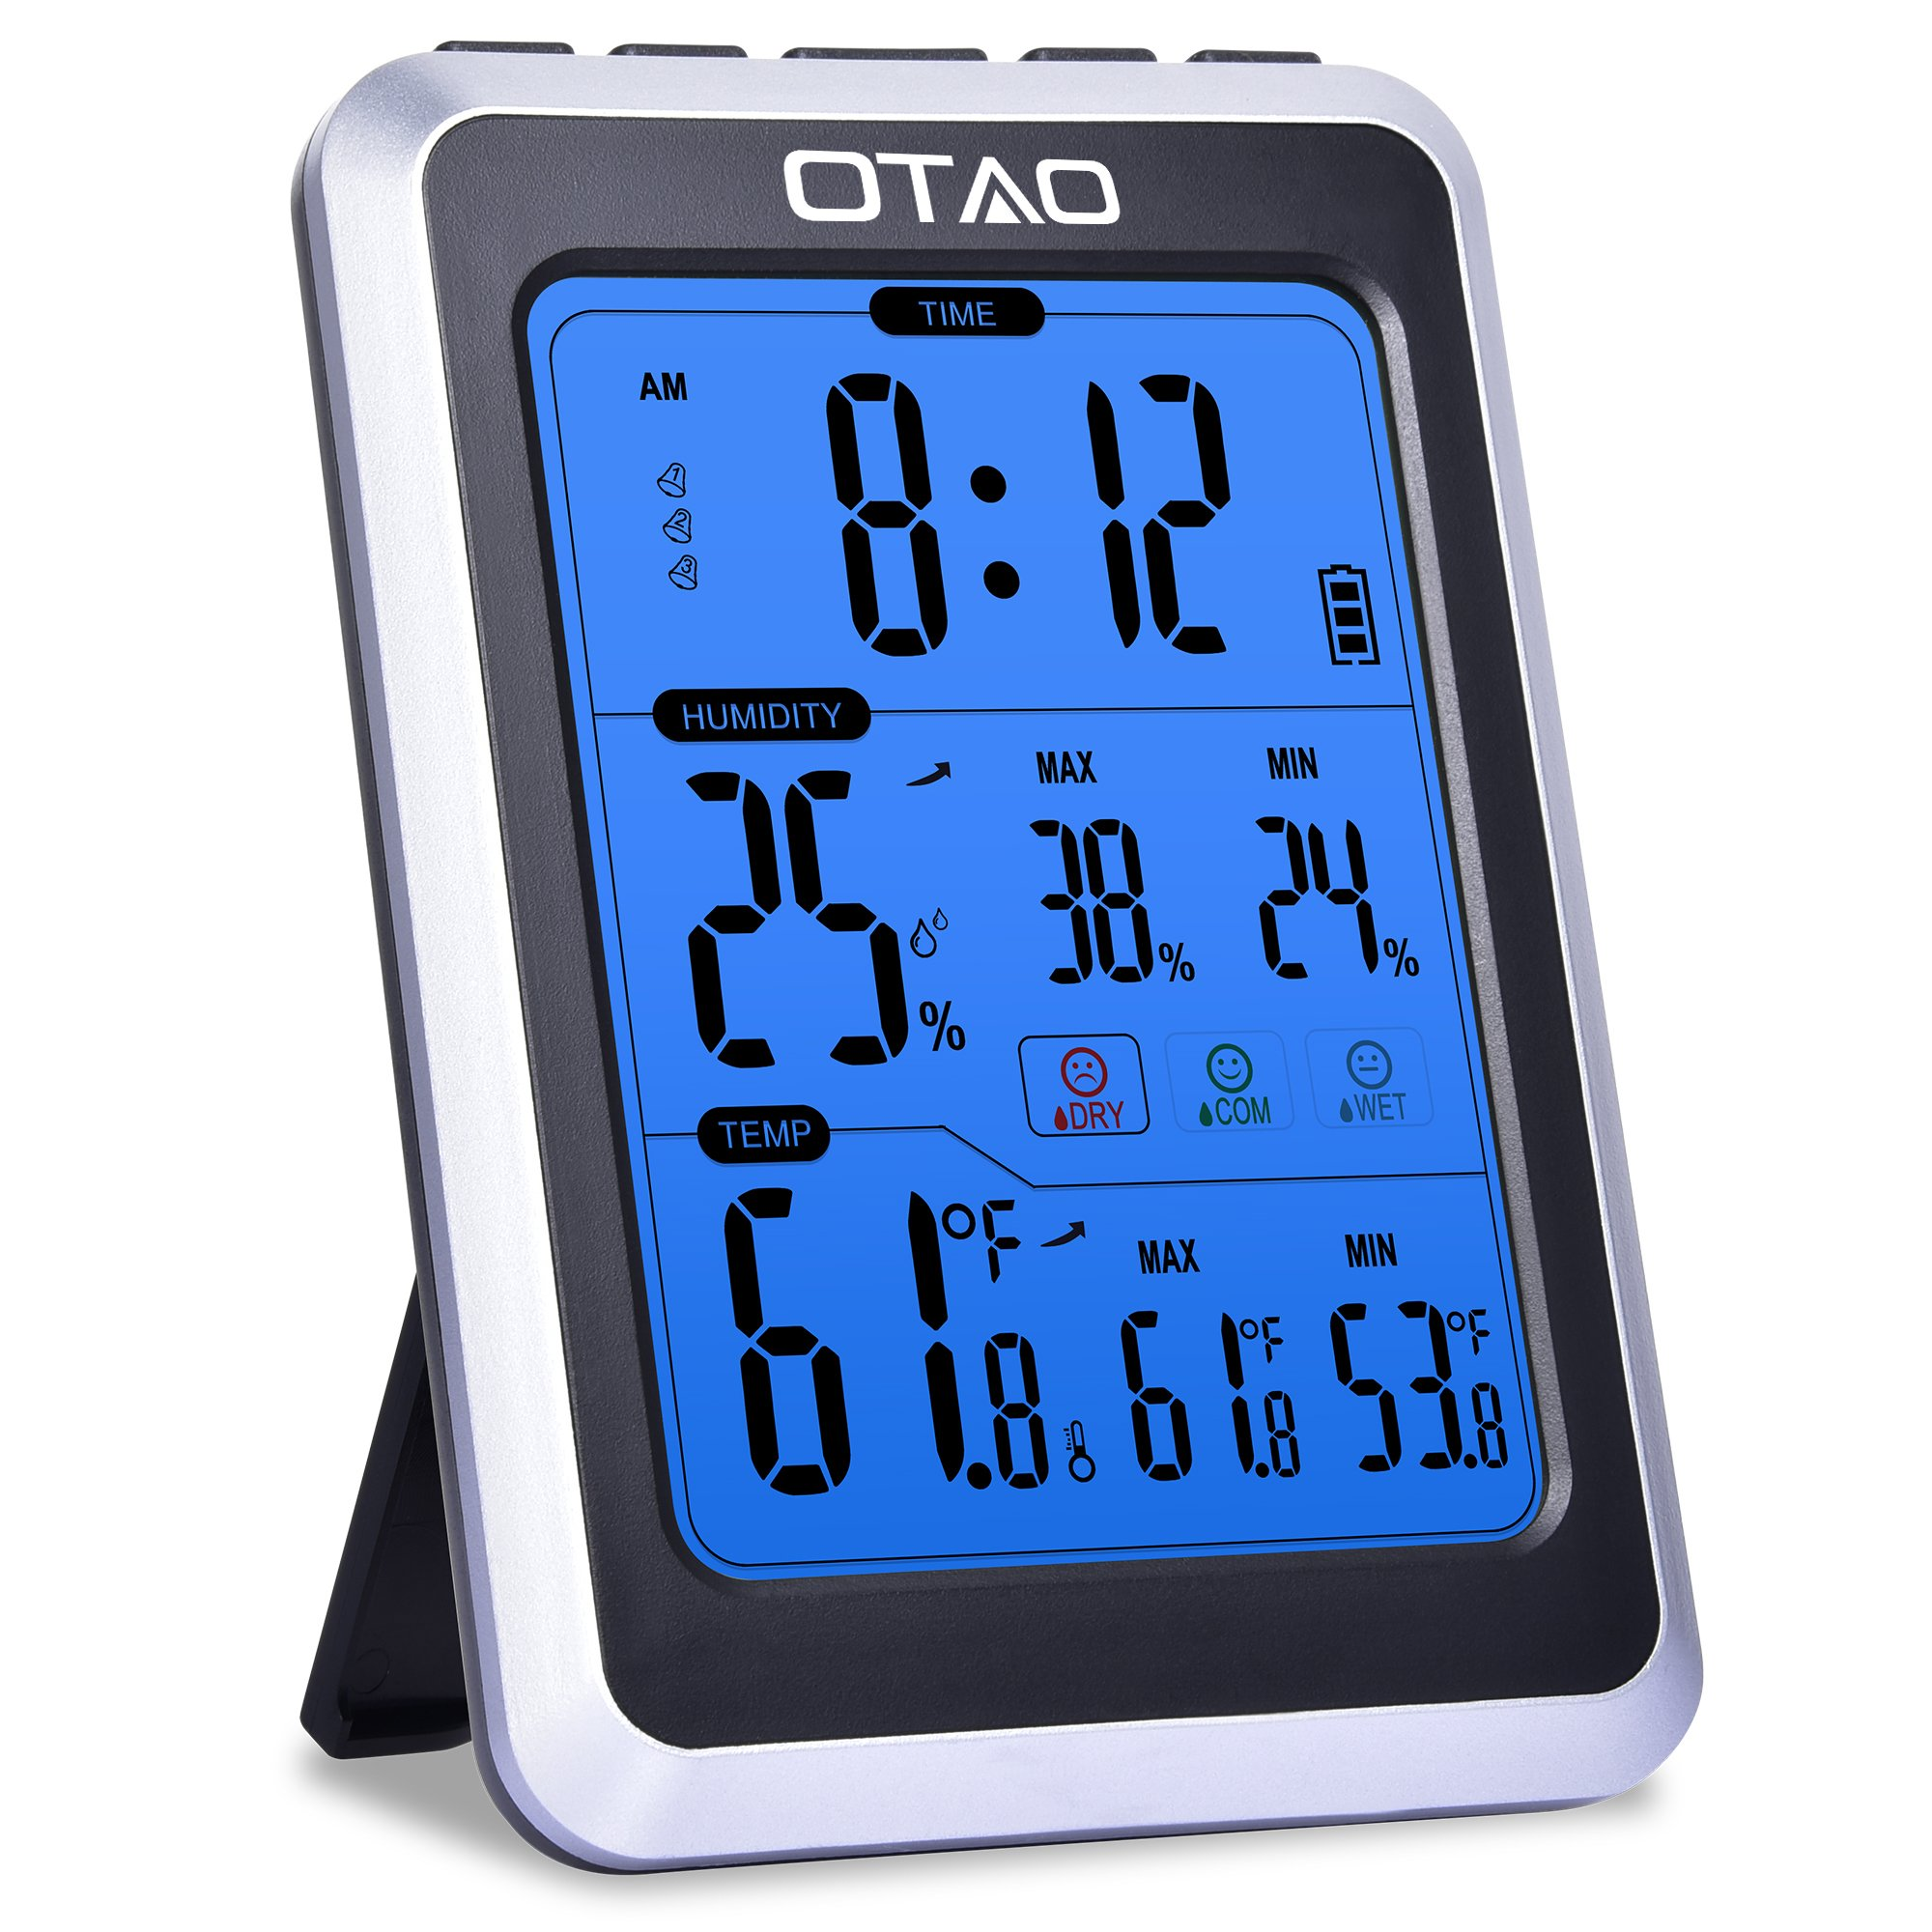 OTAO Digital Hygrometer Indoor Thermometer Humidity Meter Temperature Humidity Gauge with Alarm Clock Voice Control Backlight Room Thermometer Humidity Monitor by OTAO